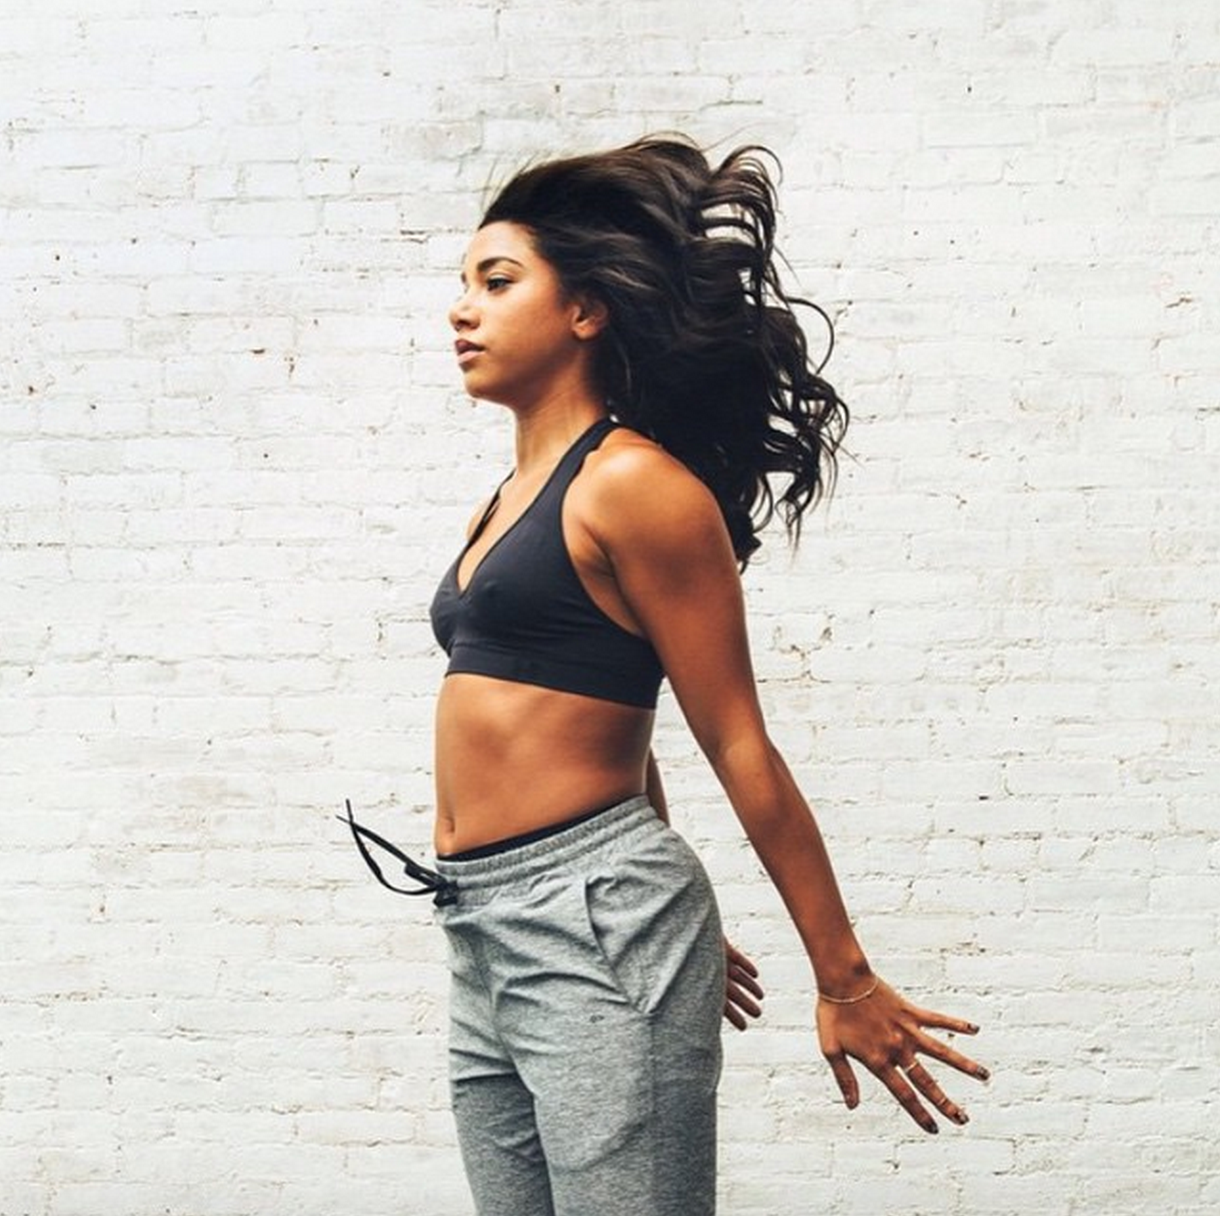 Photo via  @hannahbronfman